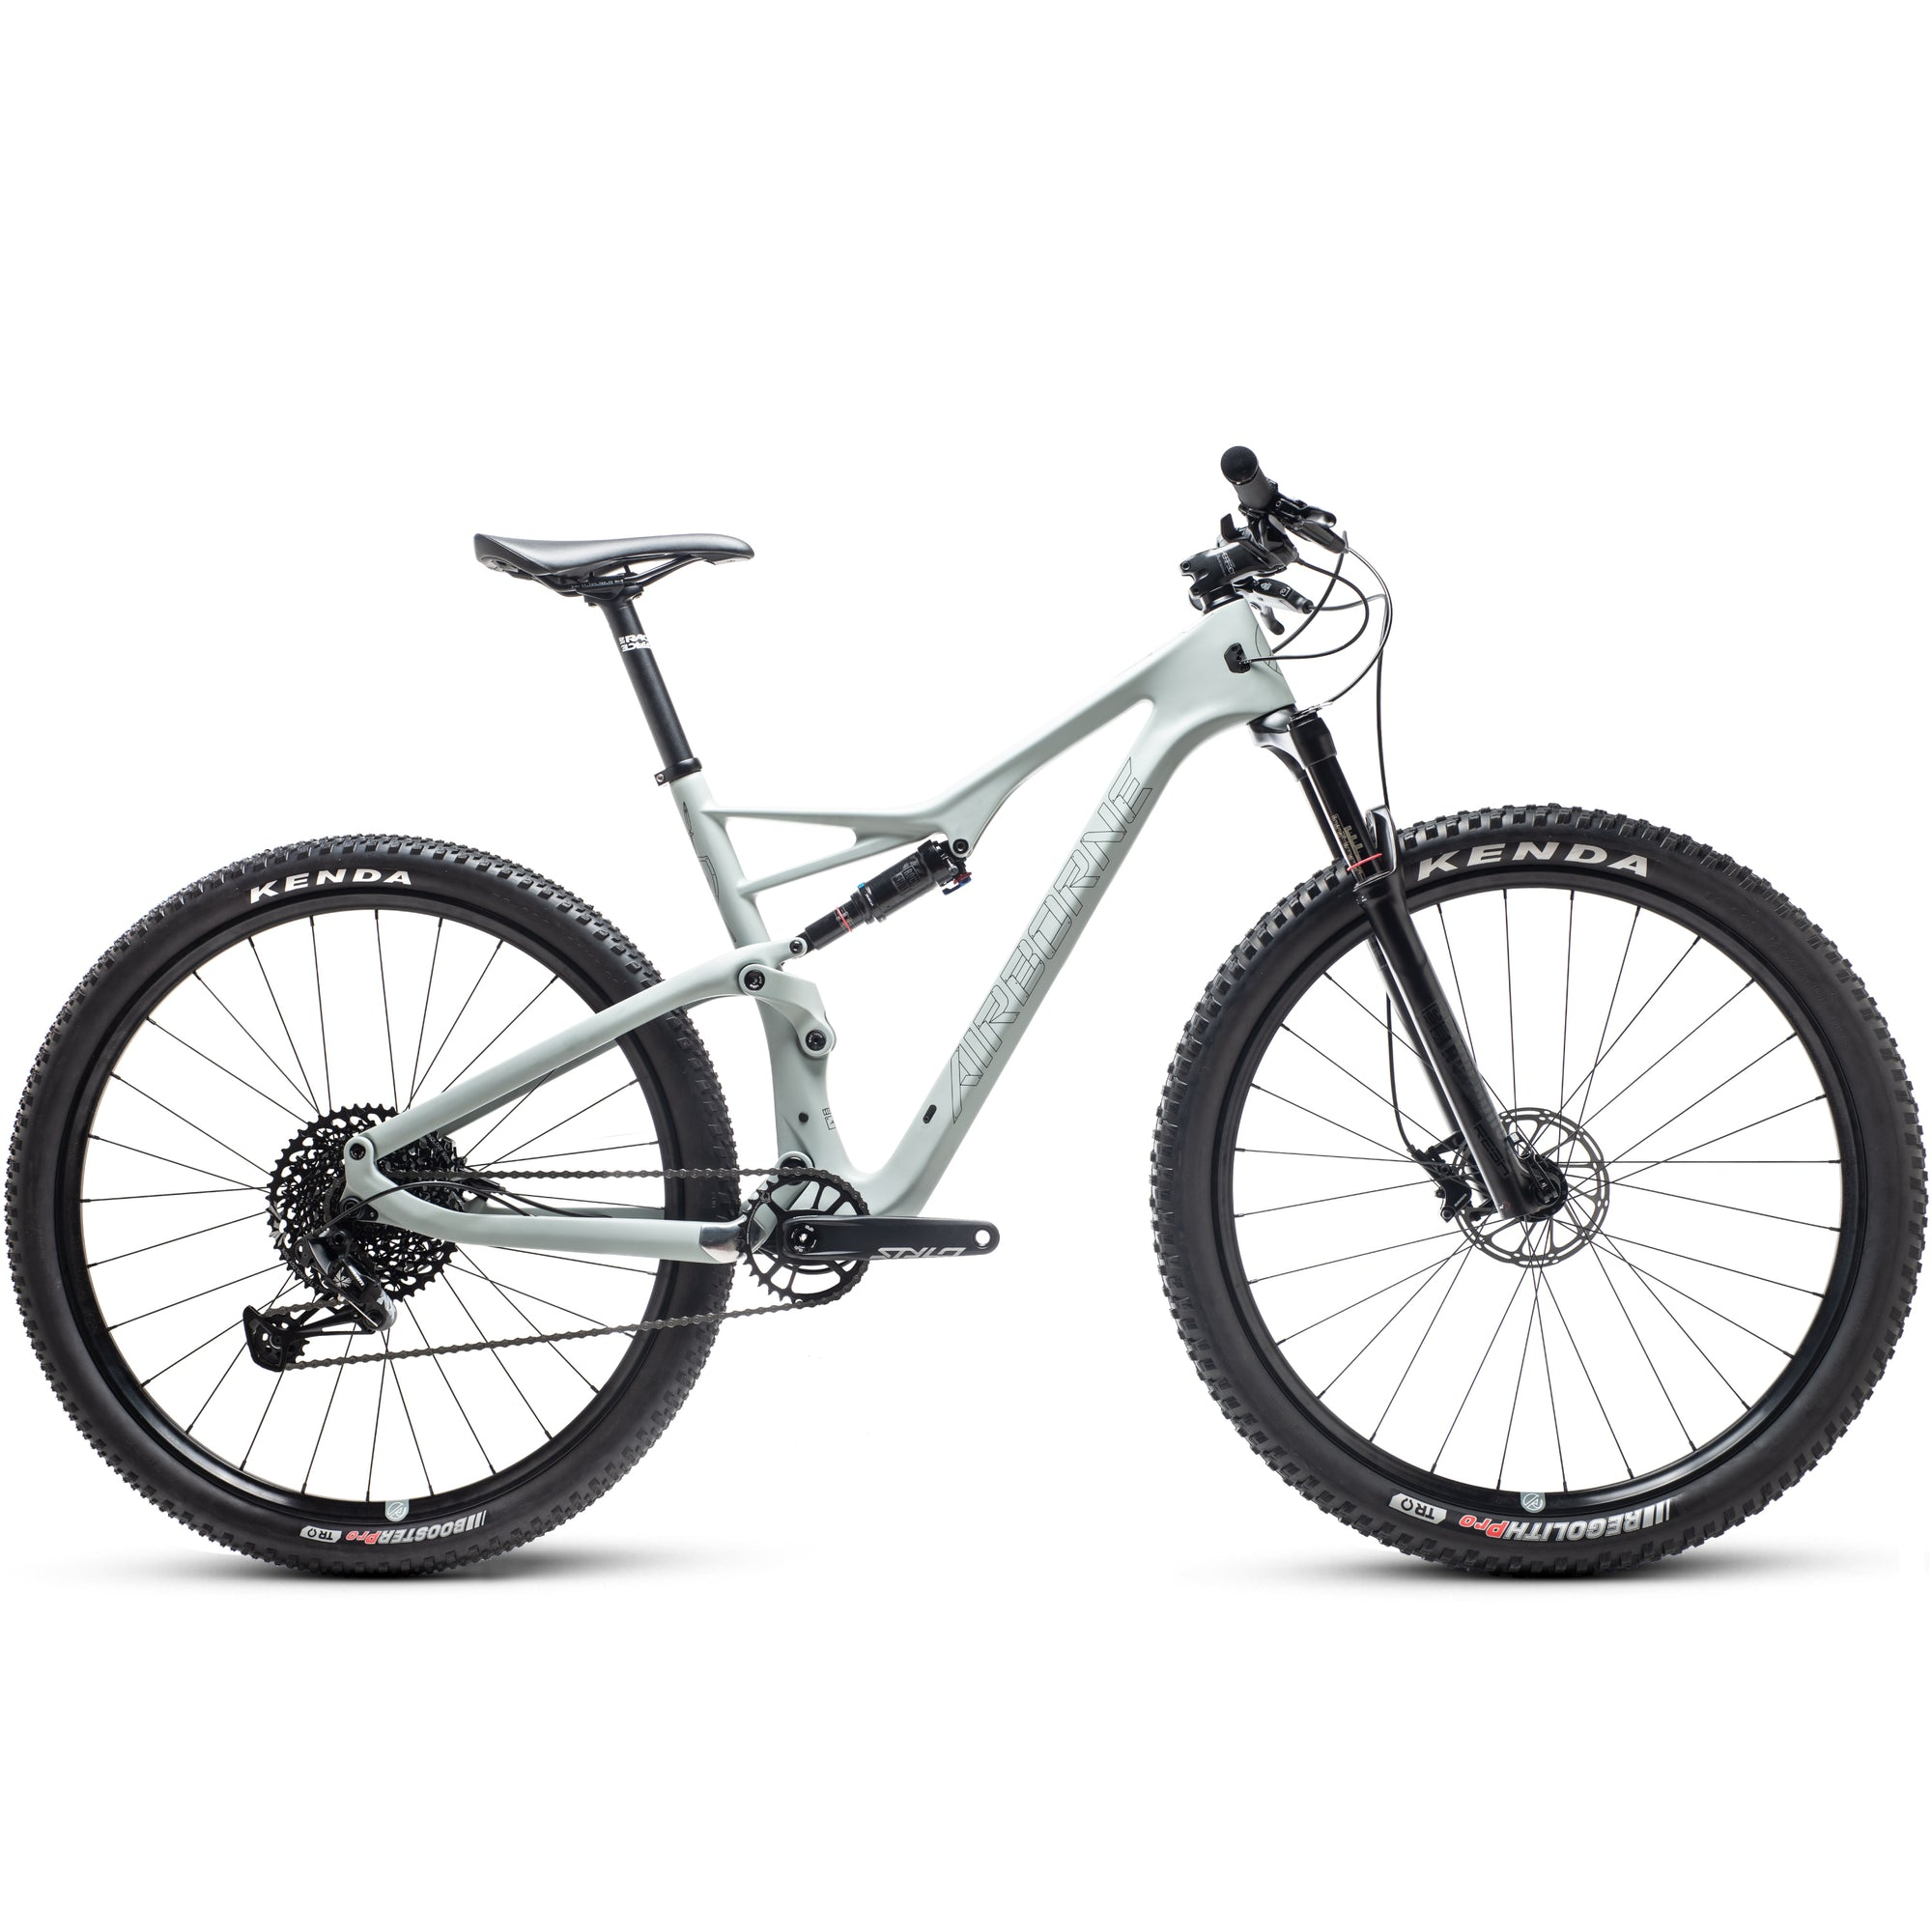 "Airborne Hob Goblin 29"" Light-Travel Carbon XC Full Suspension"